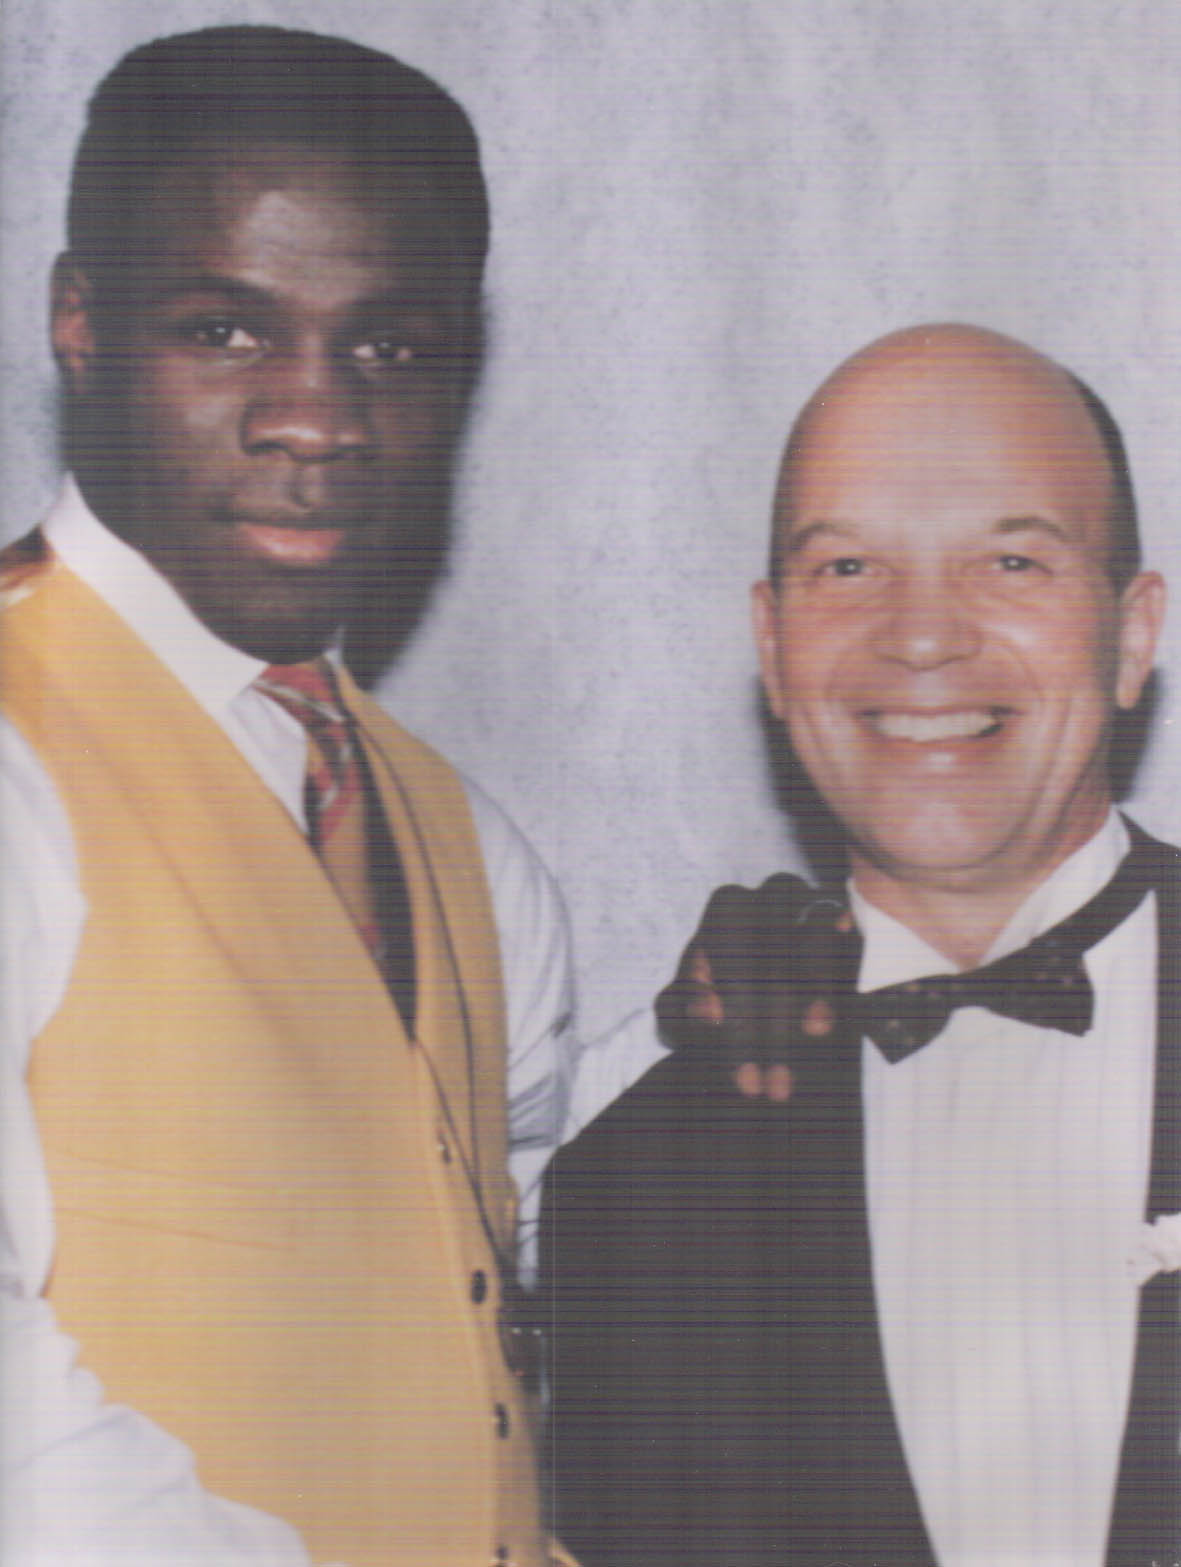 Gerry in his element as sports reporter with boxer Chris Eubank